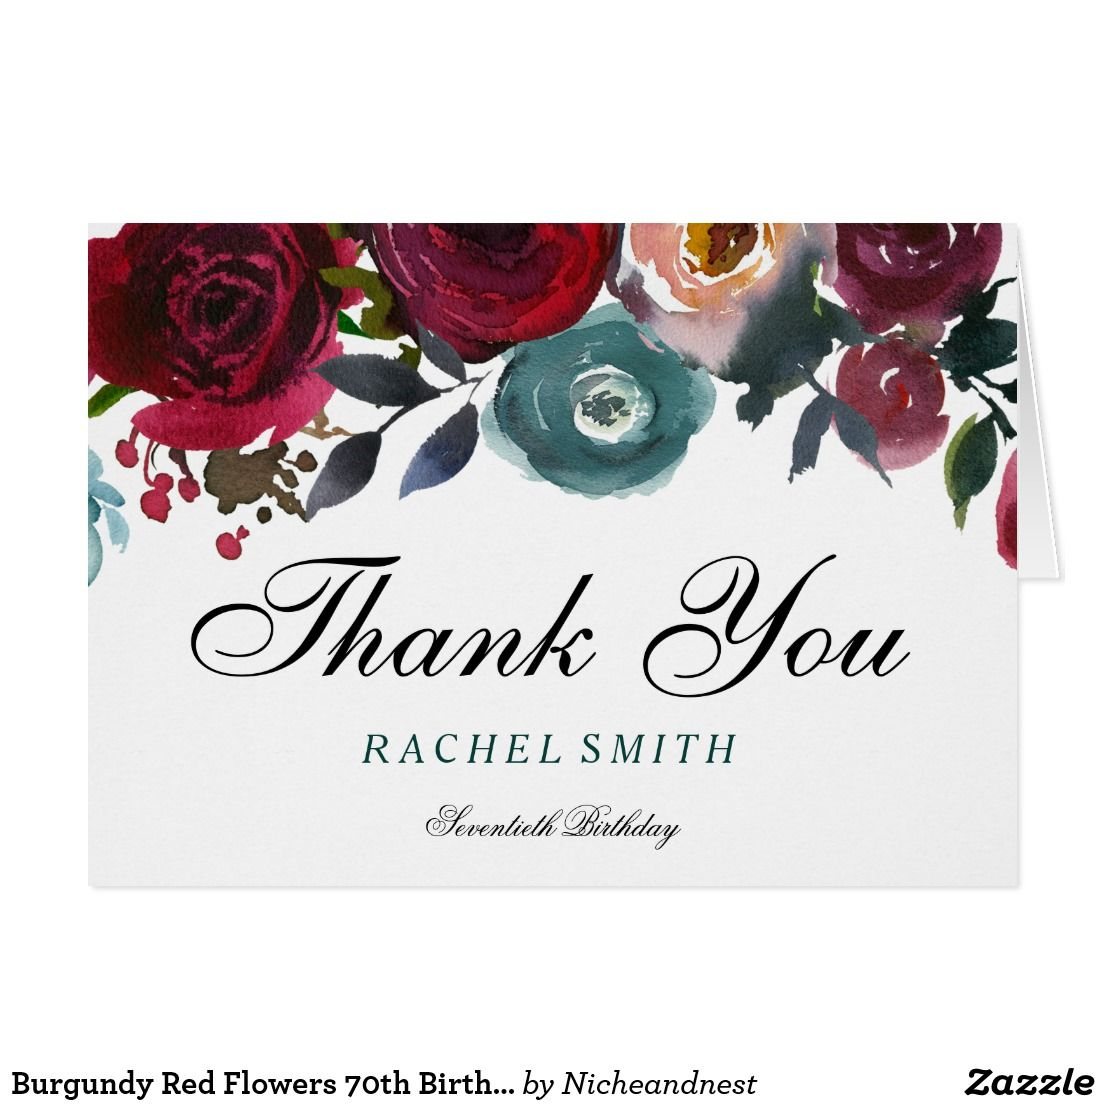 Burgundy red flowers 70th birthday thank you happy birthday burgundy red flowers 70th birthday thank you card burgundy red flowers 70th birthday thank you see matching collection in niche and nest storee custom izmirmasajfo